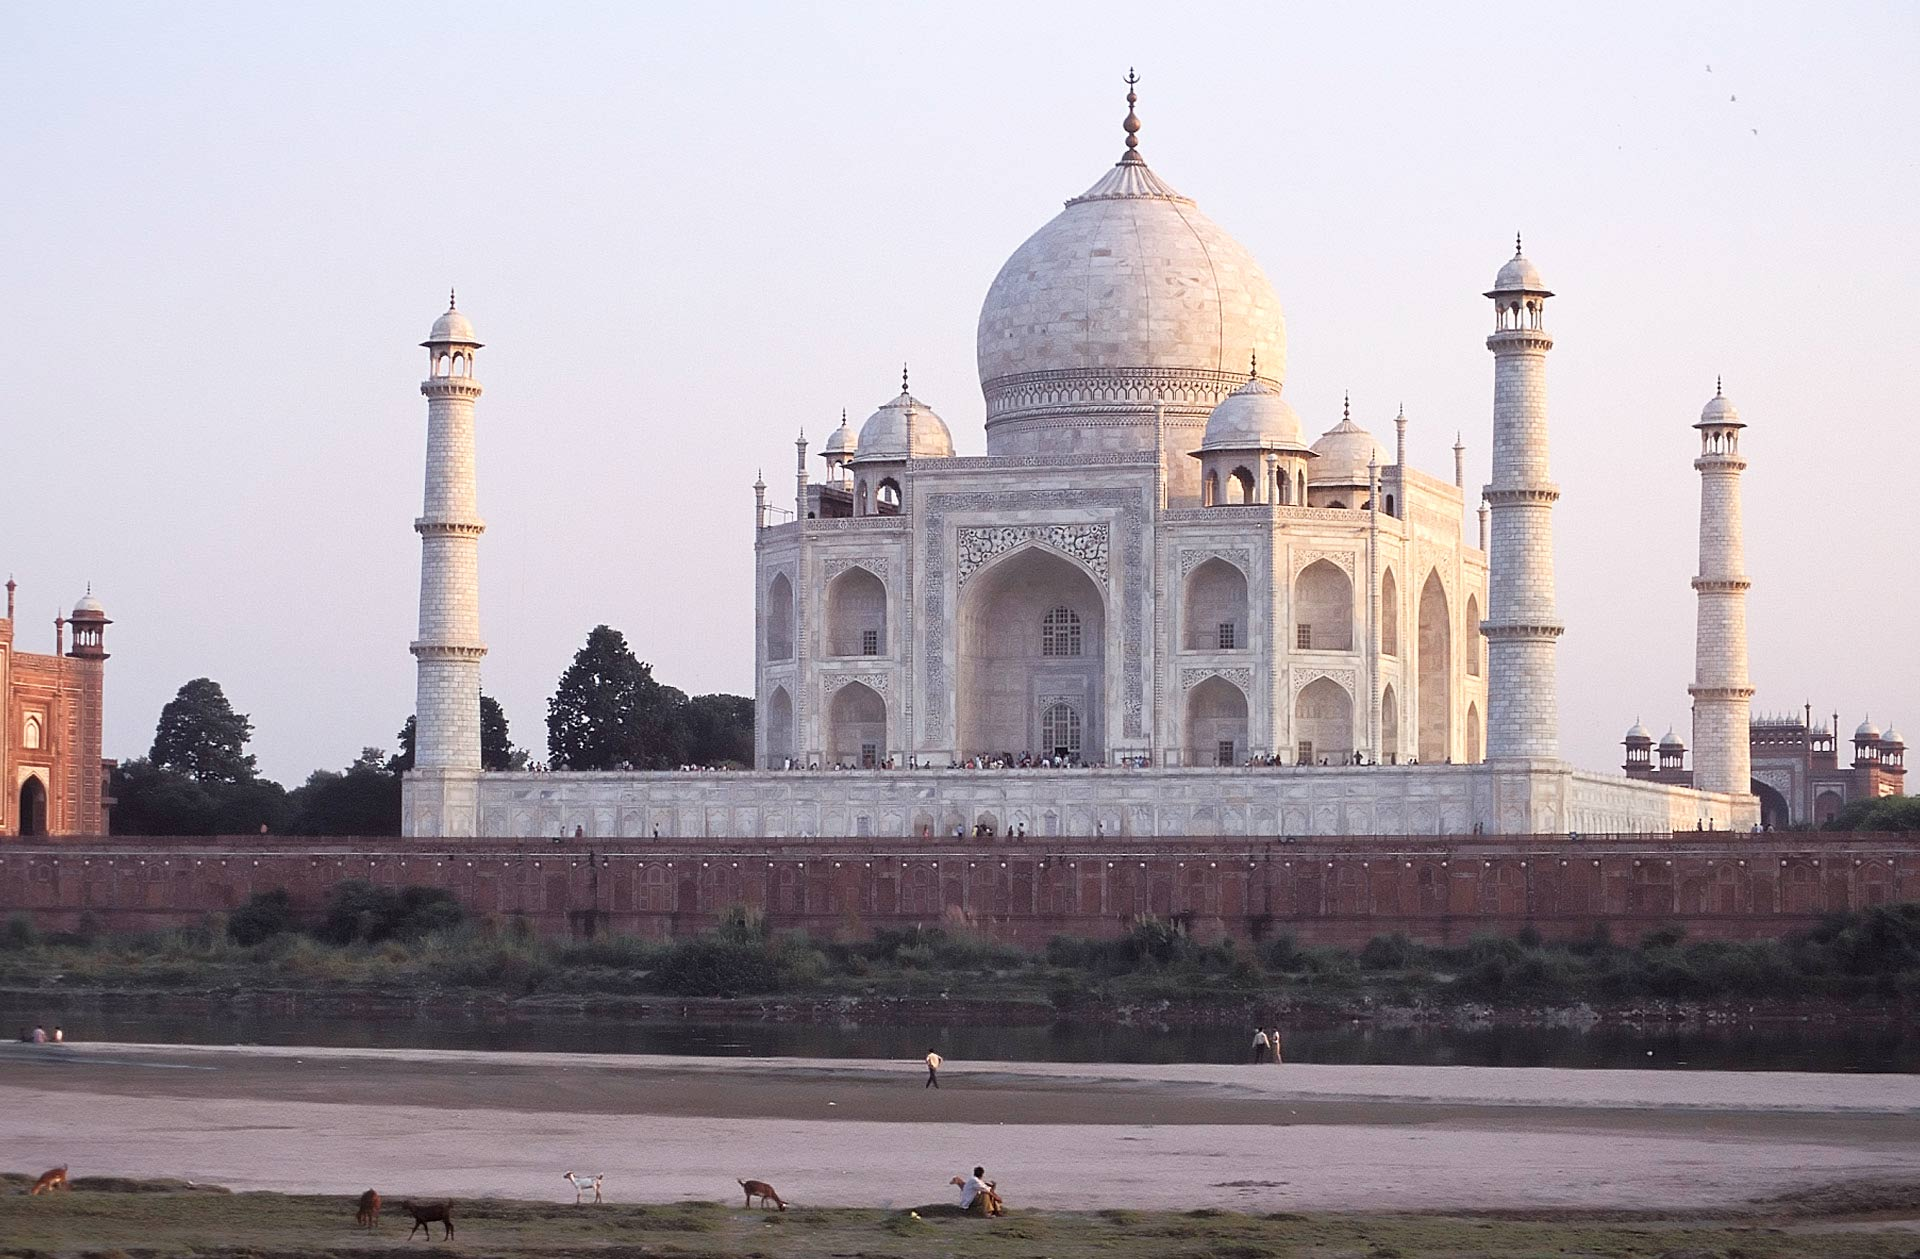 Taj Mahal & the Yamuna river at sunset, Agra, Uttar Pradesh, India